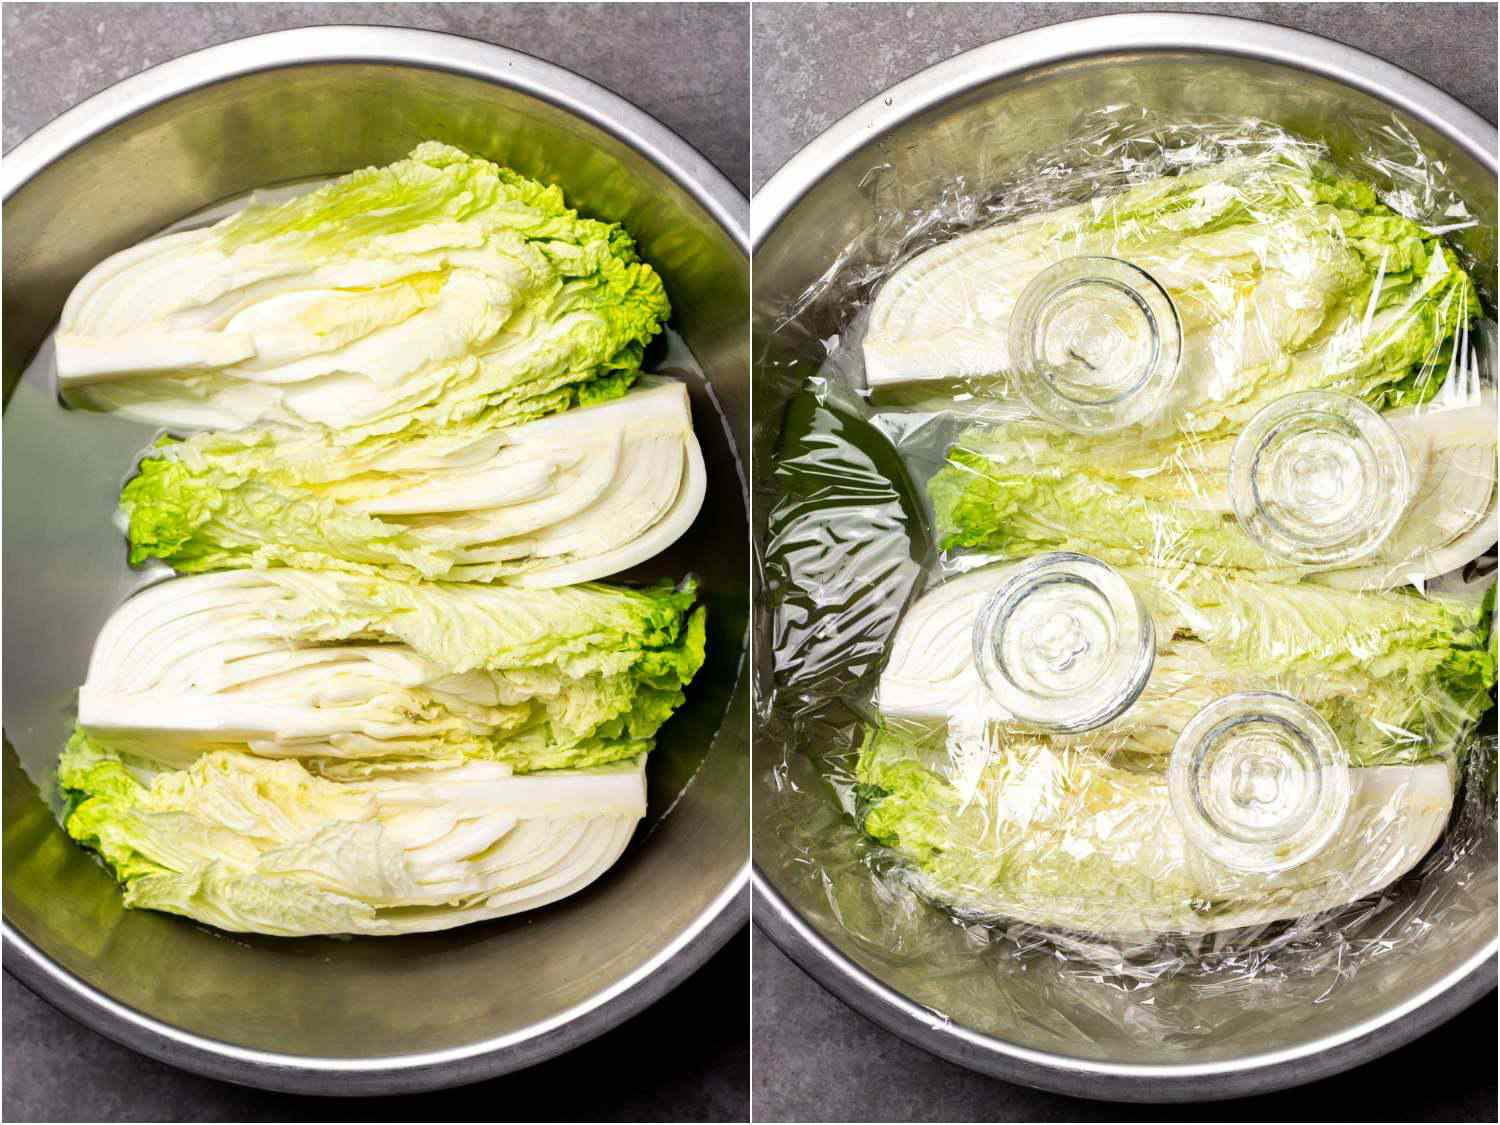 collage: four quarters of napa cabbage in a bowl with a brining mixture; plastic wrap and weights added on top to keep cabbage submerged